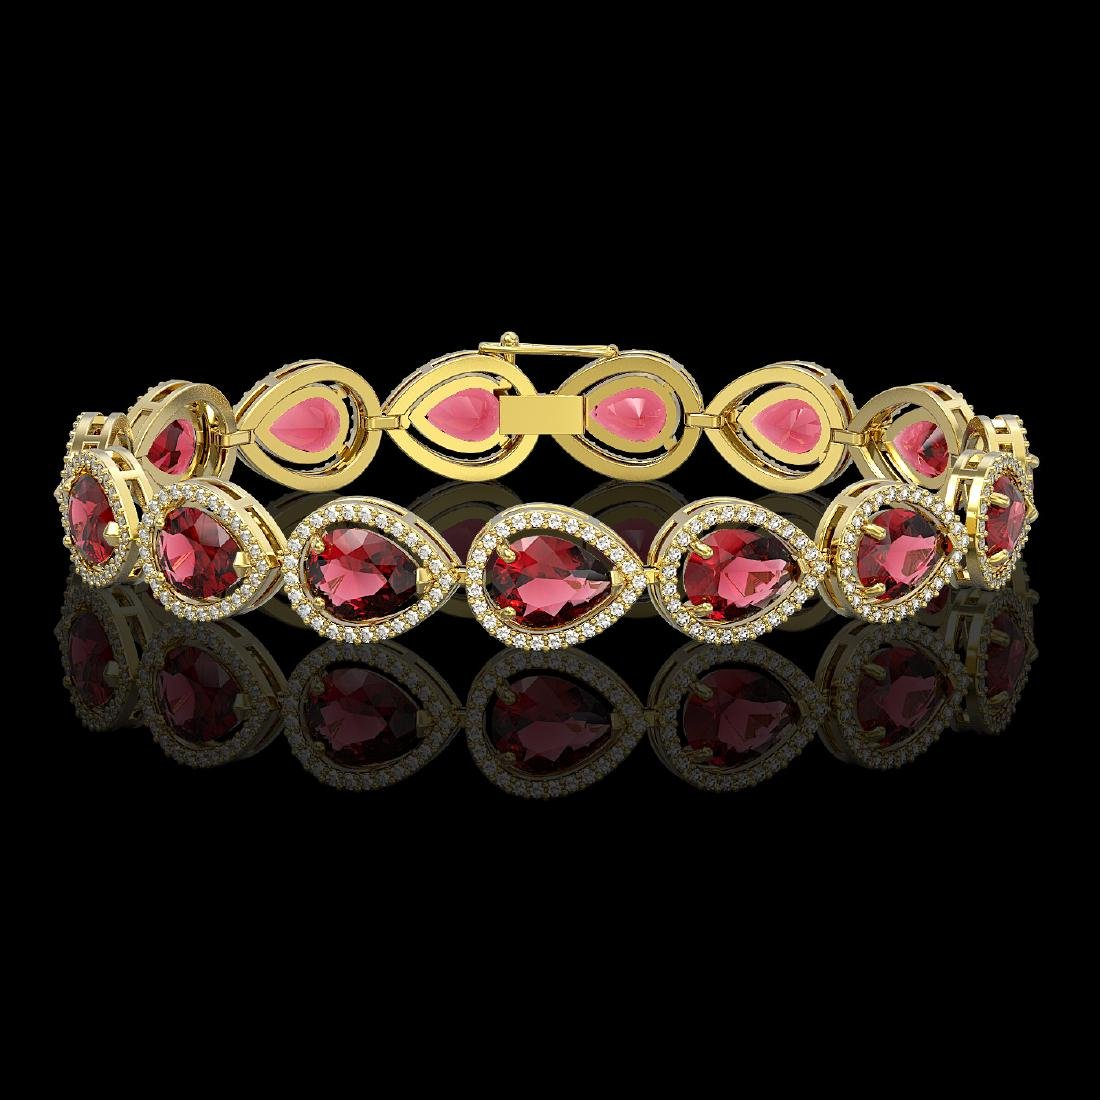 19.7 CTW Tourmaline & Diamond Halo Bracelet 10K Yellow